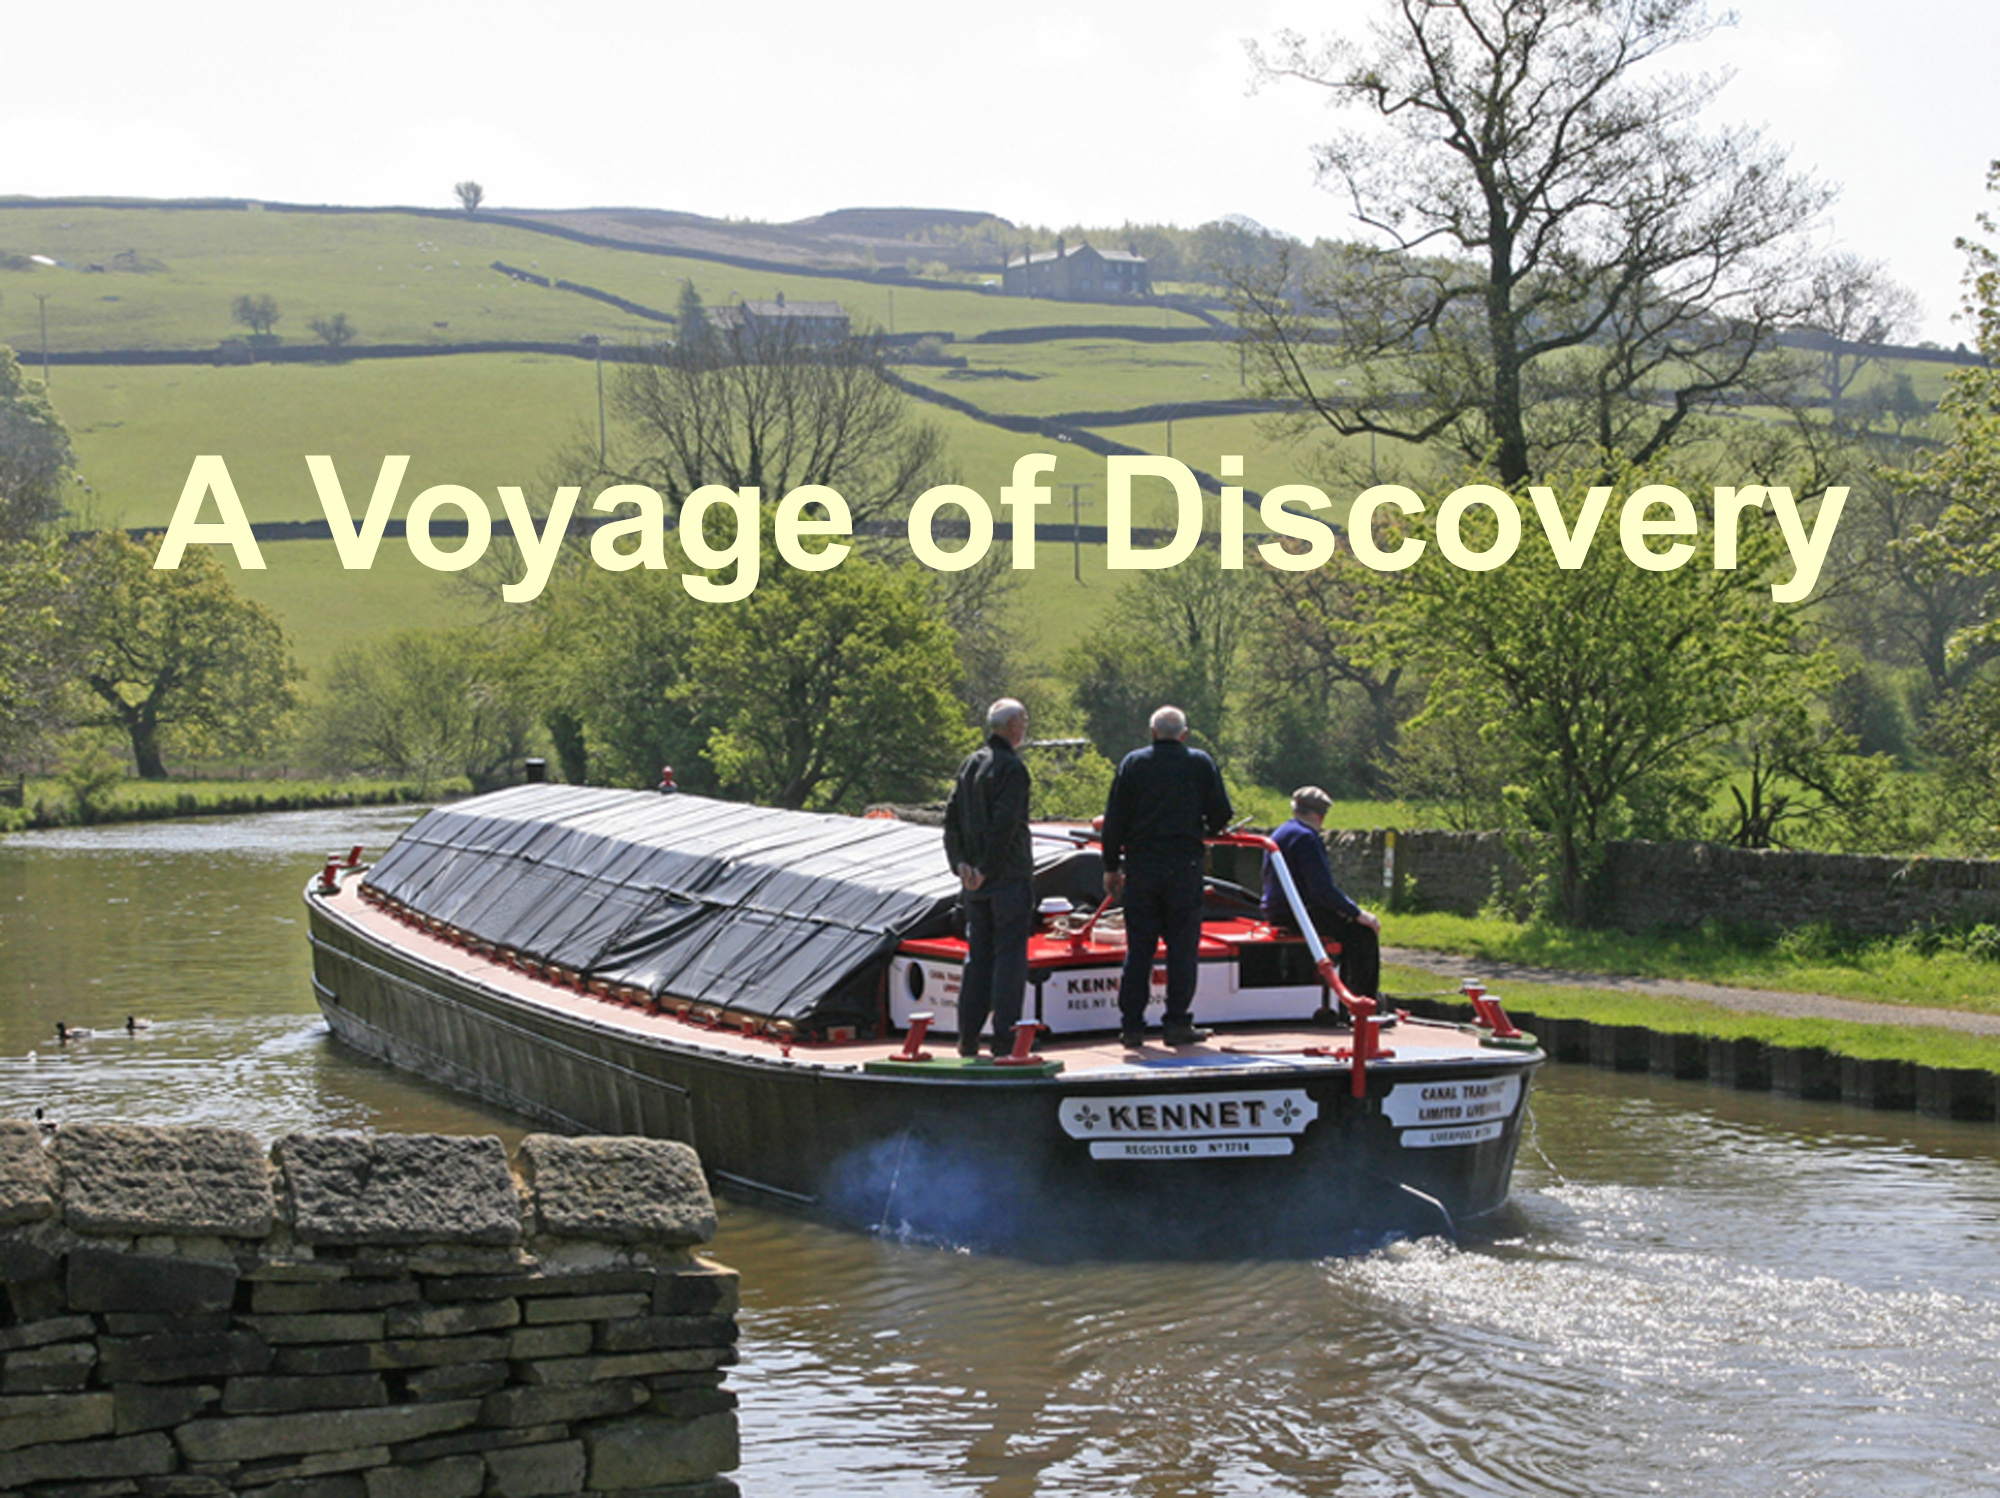 Leeds and Liverpool Canal Society Website